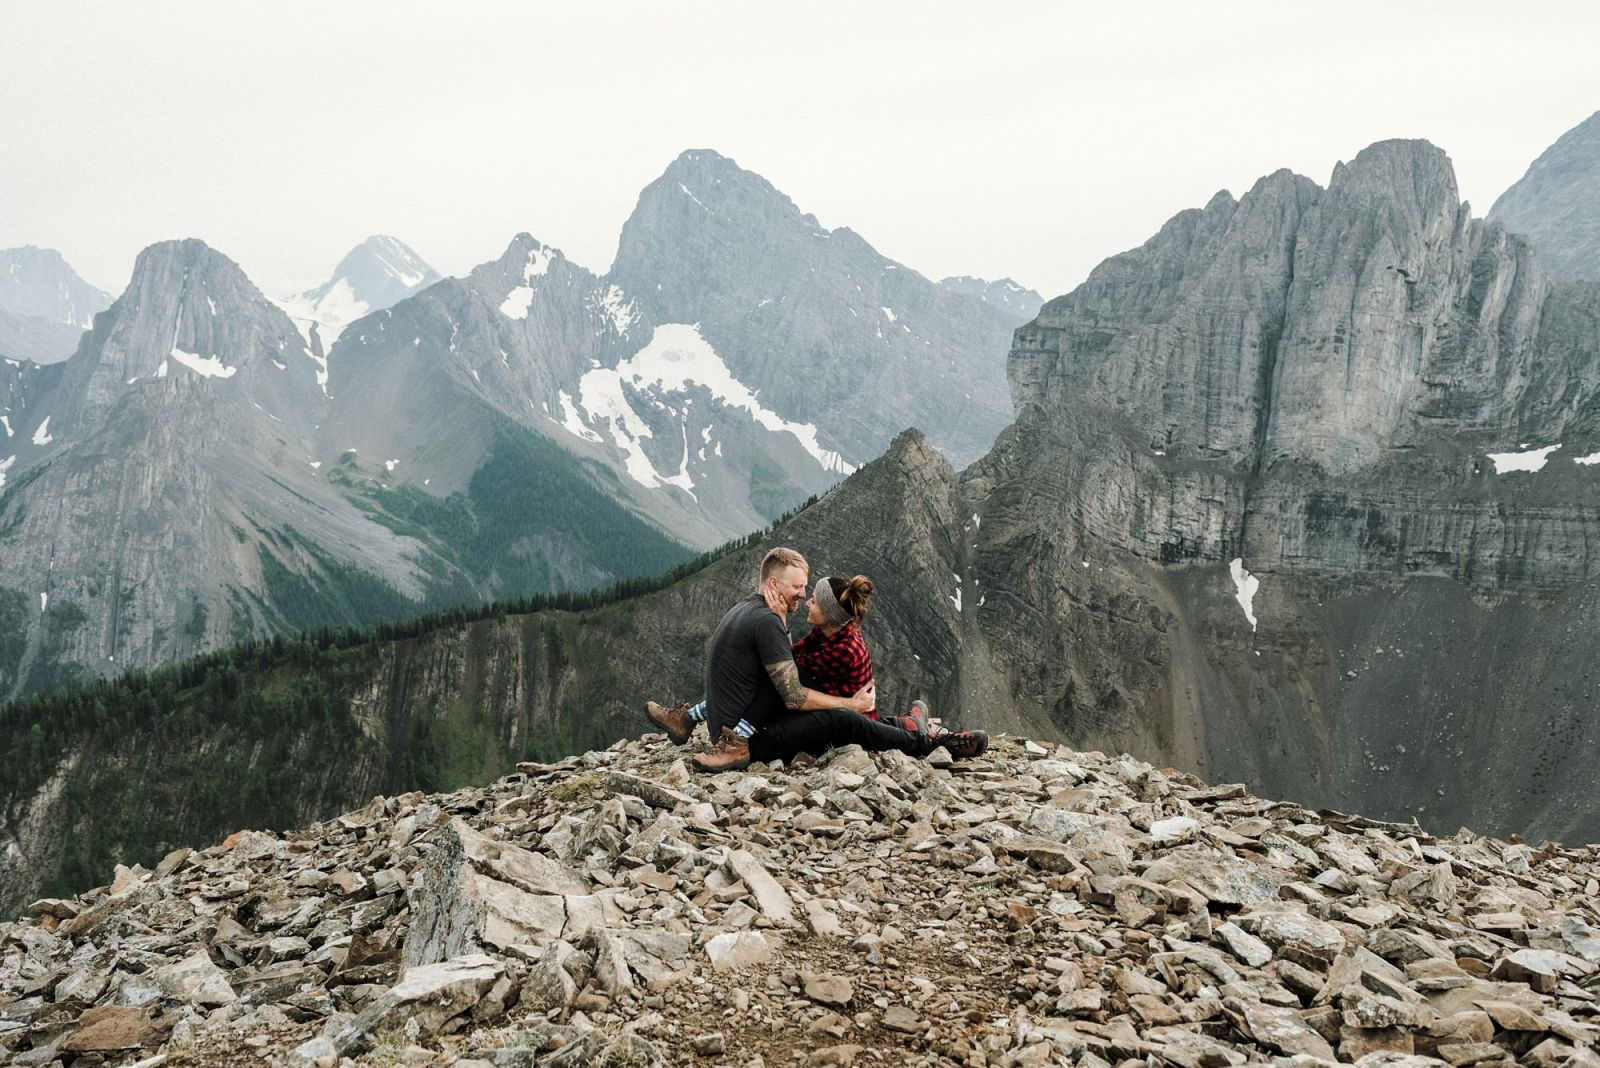 engagement photographer on top of mountain for hiking session